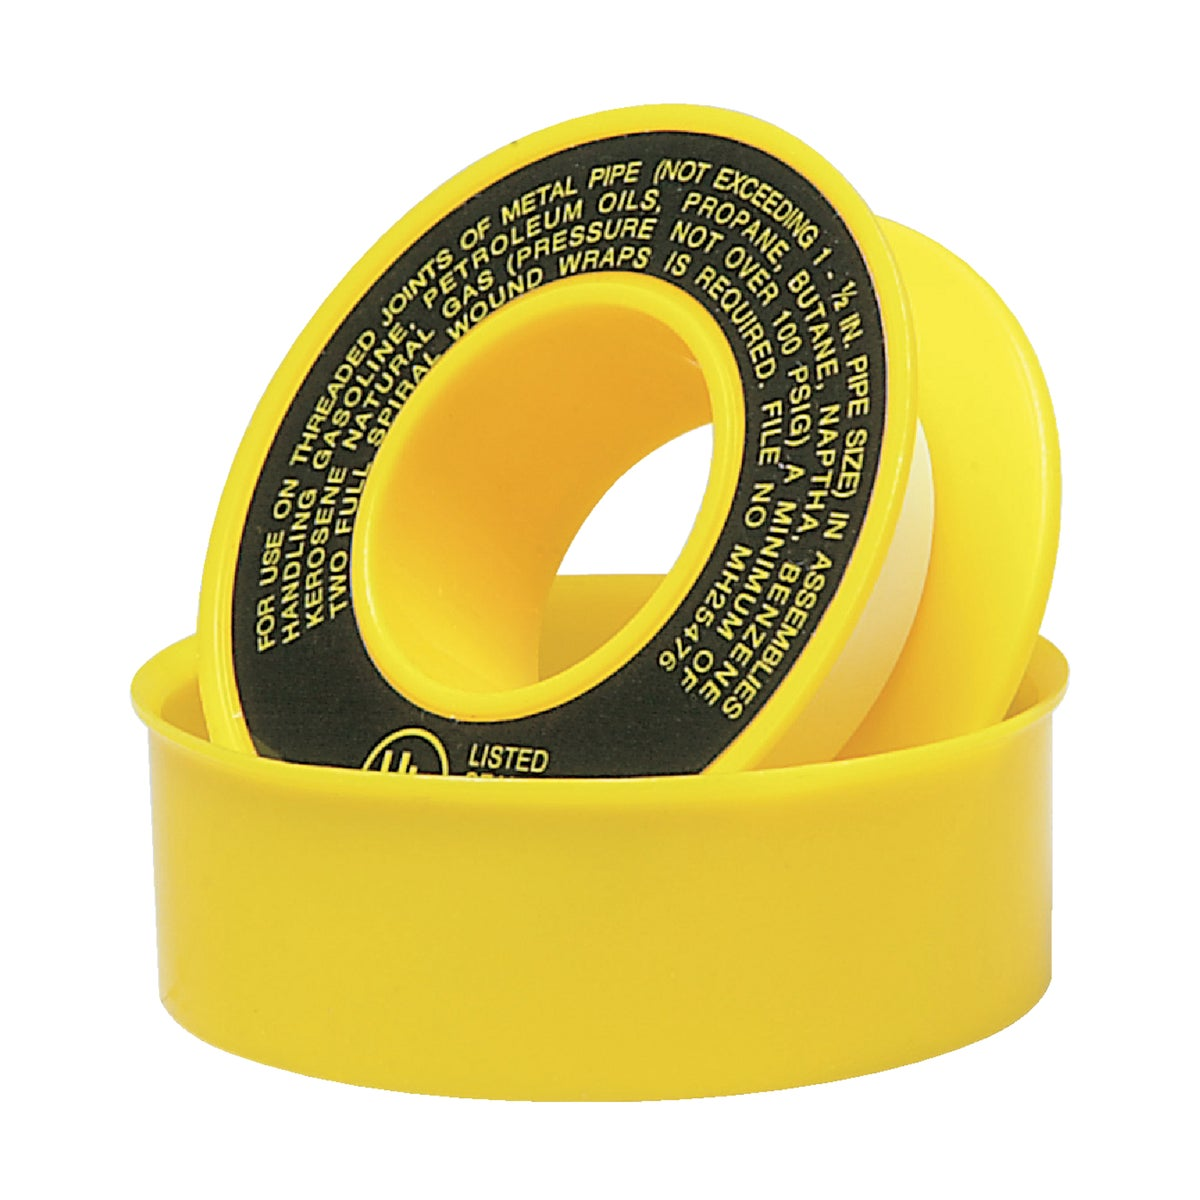 1/2X260YEL PTFE GAS TAPE - 017064 by Wm H Harvey Co